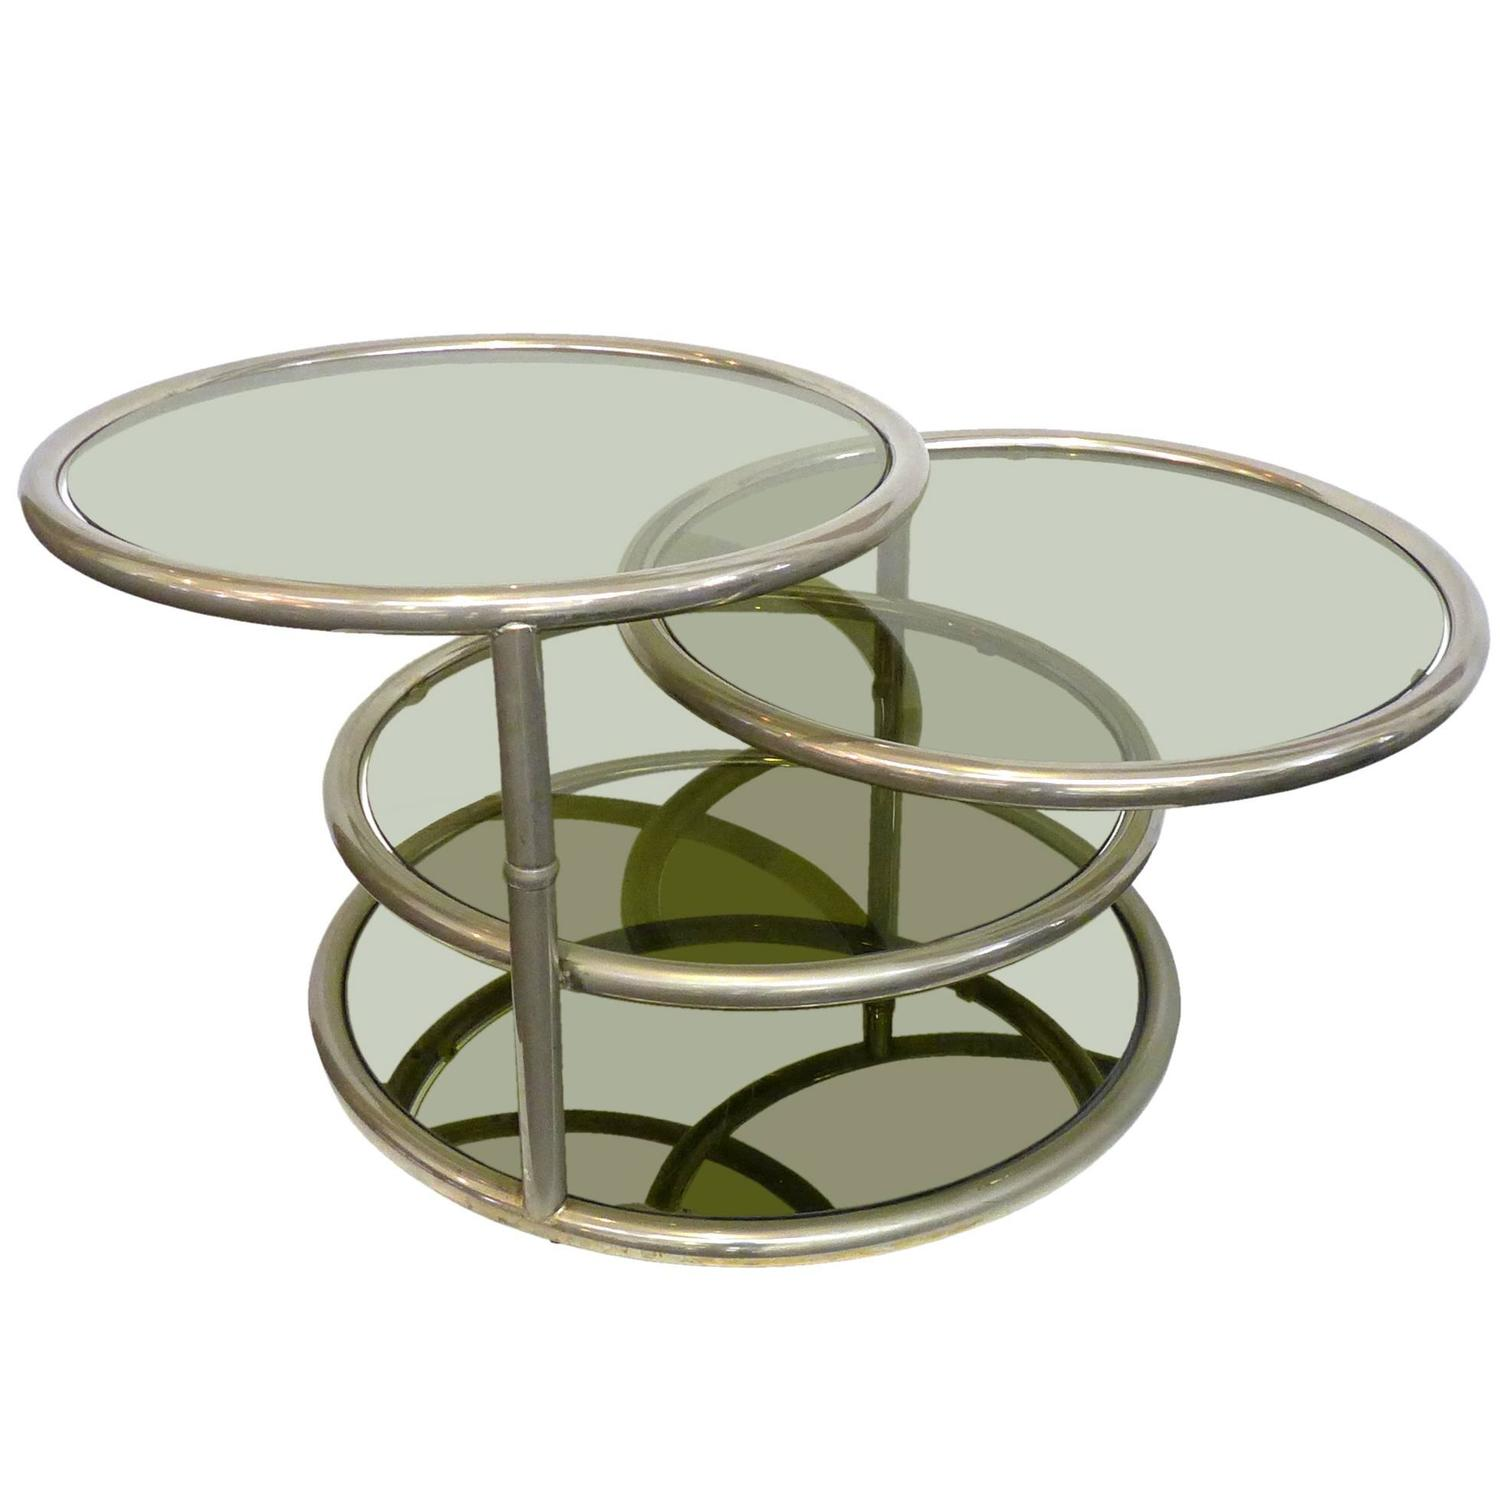 Chrome And Glass Swivel Top Table At 1stdibs